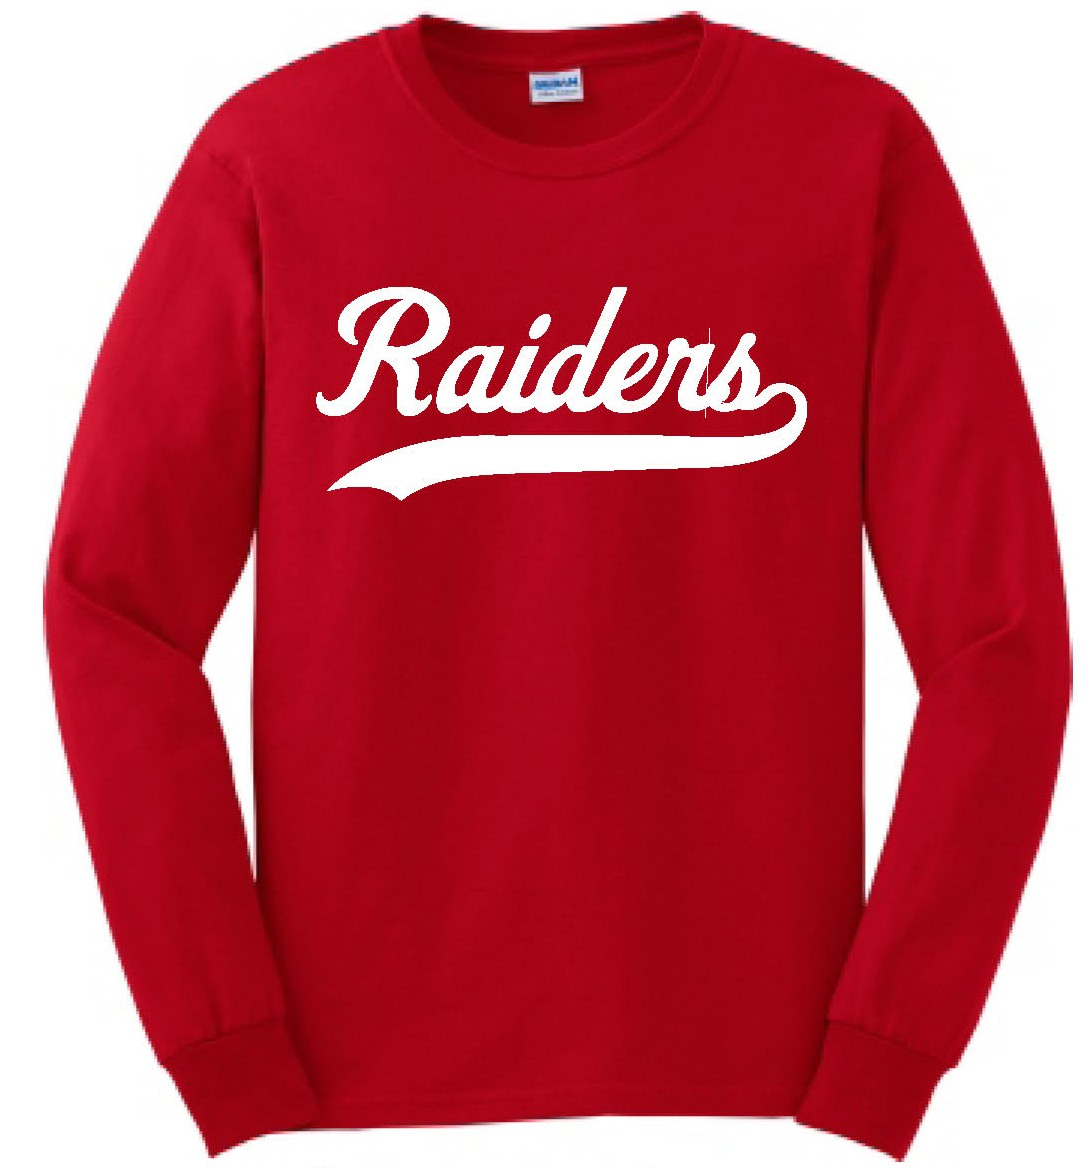 Raiders Bella-Canvas Long Sleeve Tee